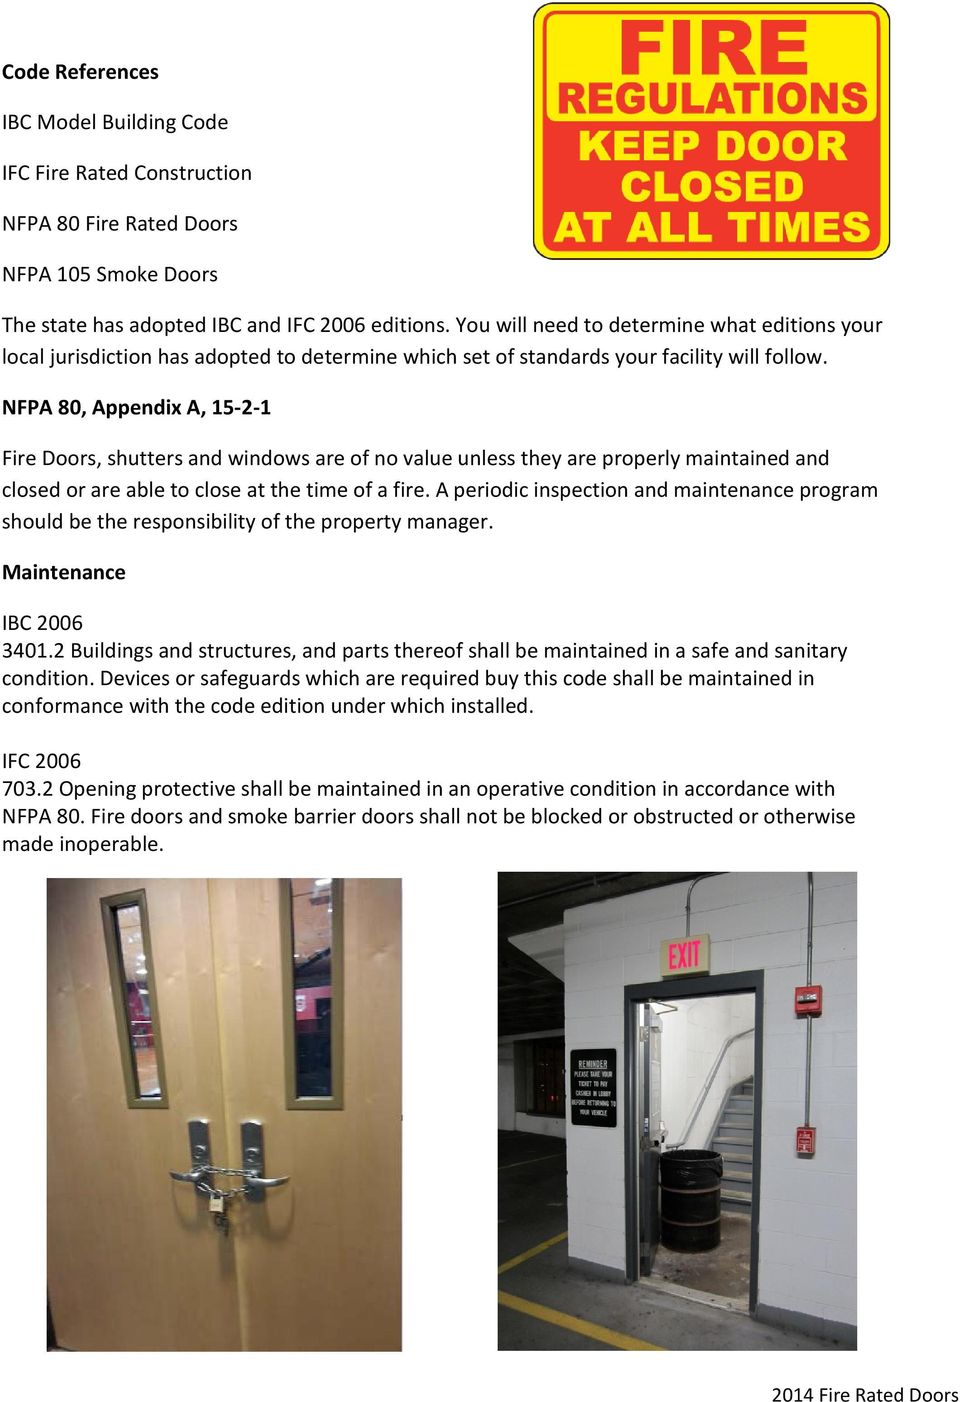 NFPA 80, Appendix A, 15-2-1 Fire Doors, shutters and windows are of no value unless they are properly maintained and closed or are able to close at the time of a fire.